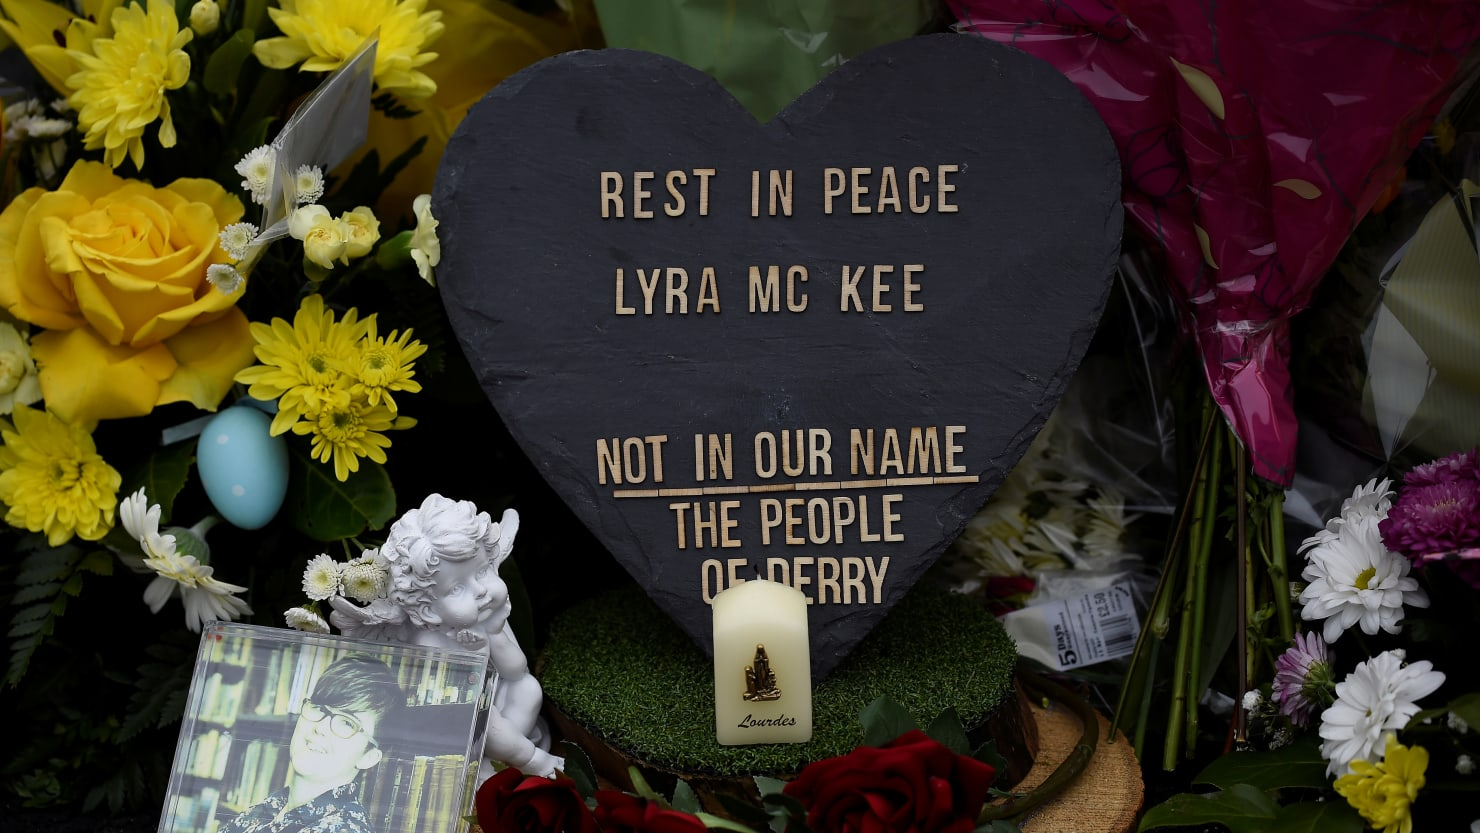 Theresa May and Irish President to Attend Murdered Journalist Lyra McKee's Funeral